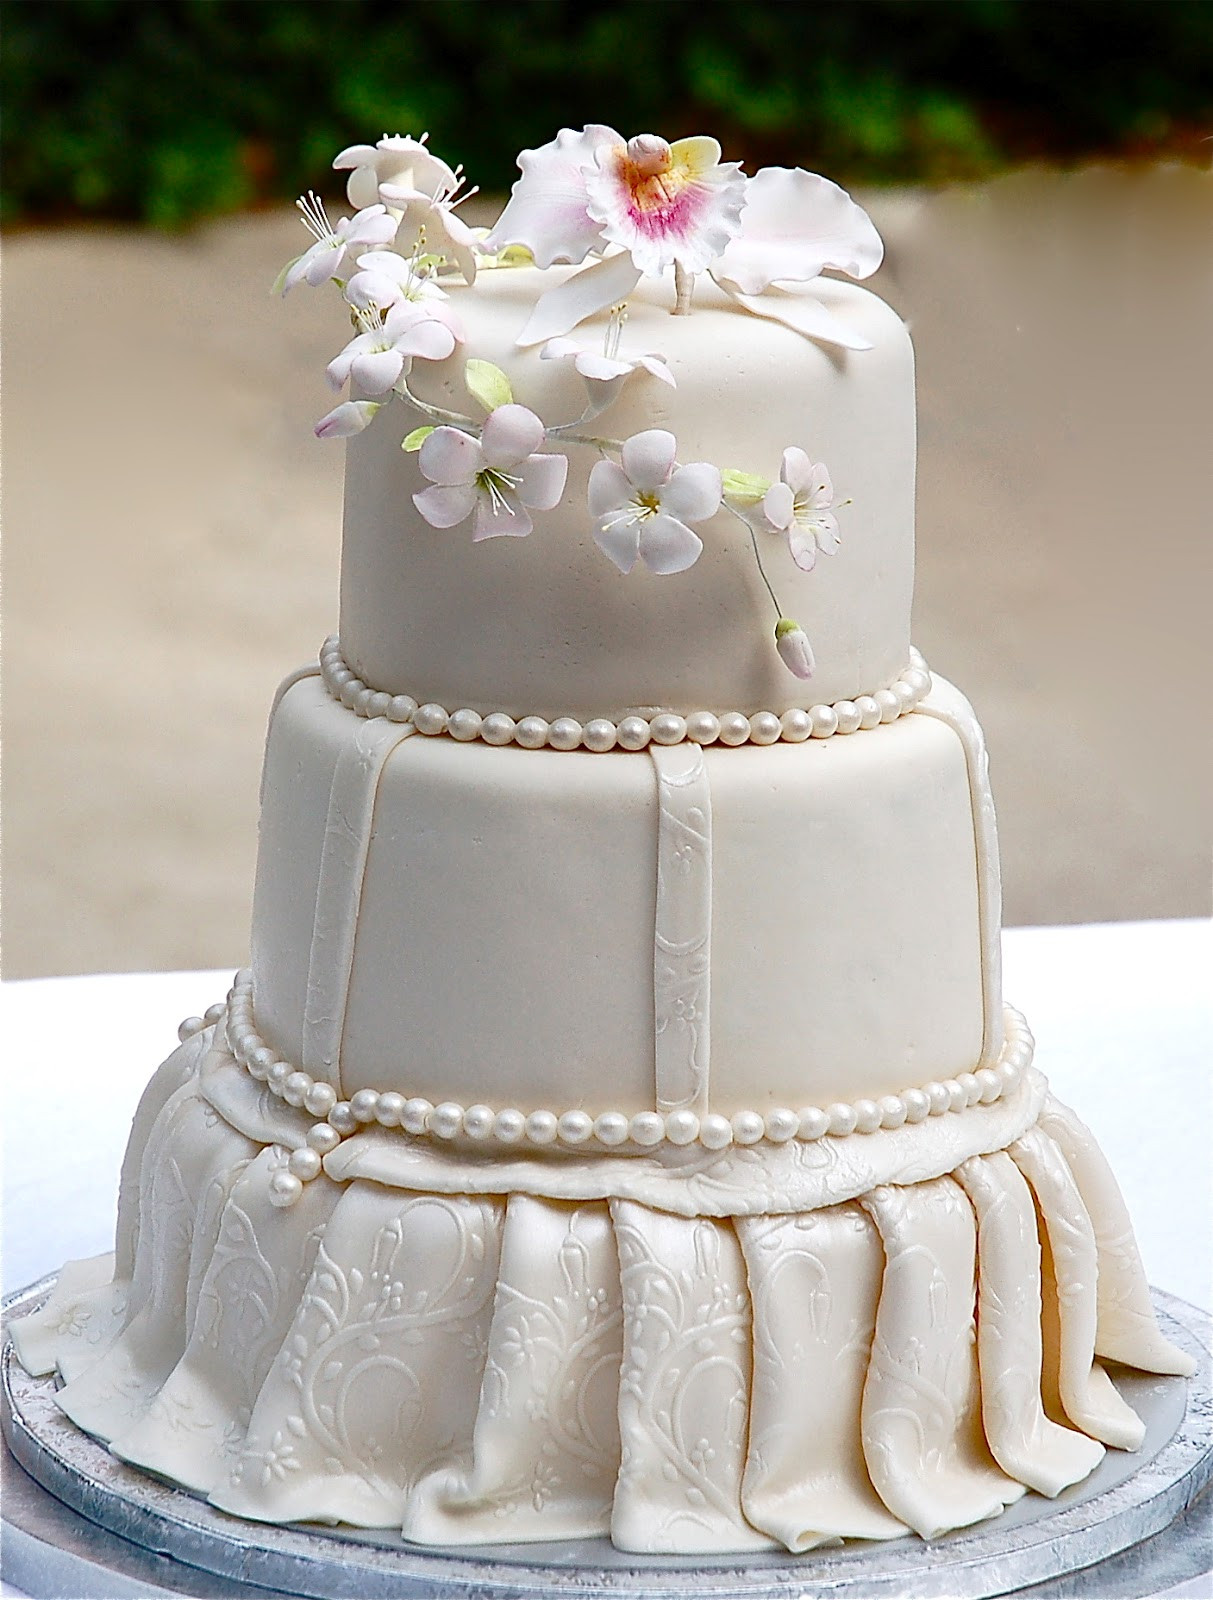 Recipe For Wedding Cakes  Amazing Dessert Recipes Wedding Cake with a Textured